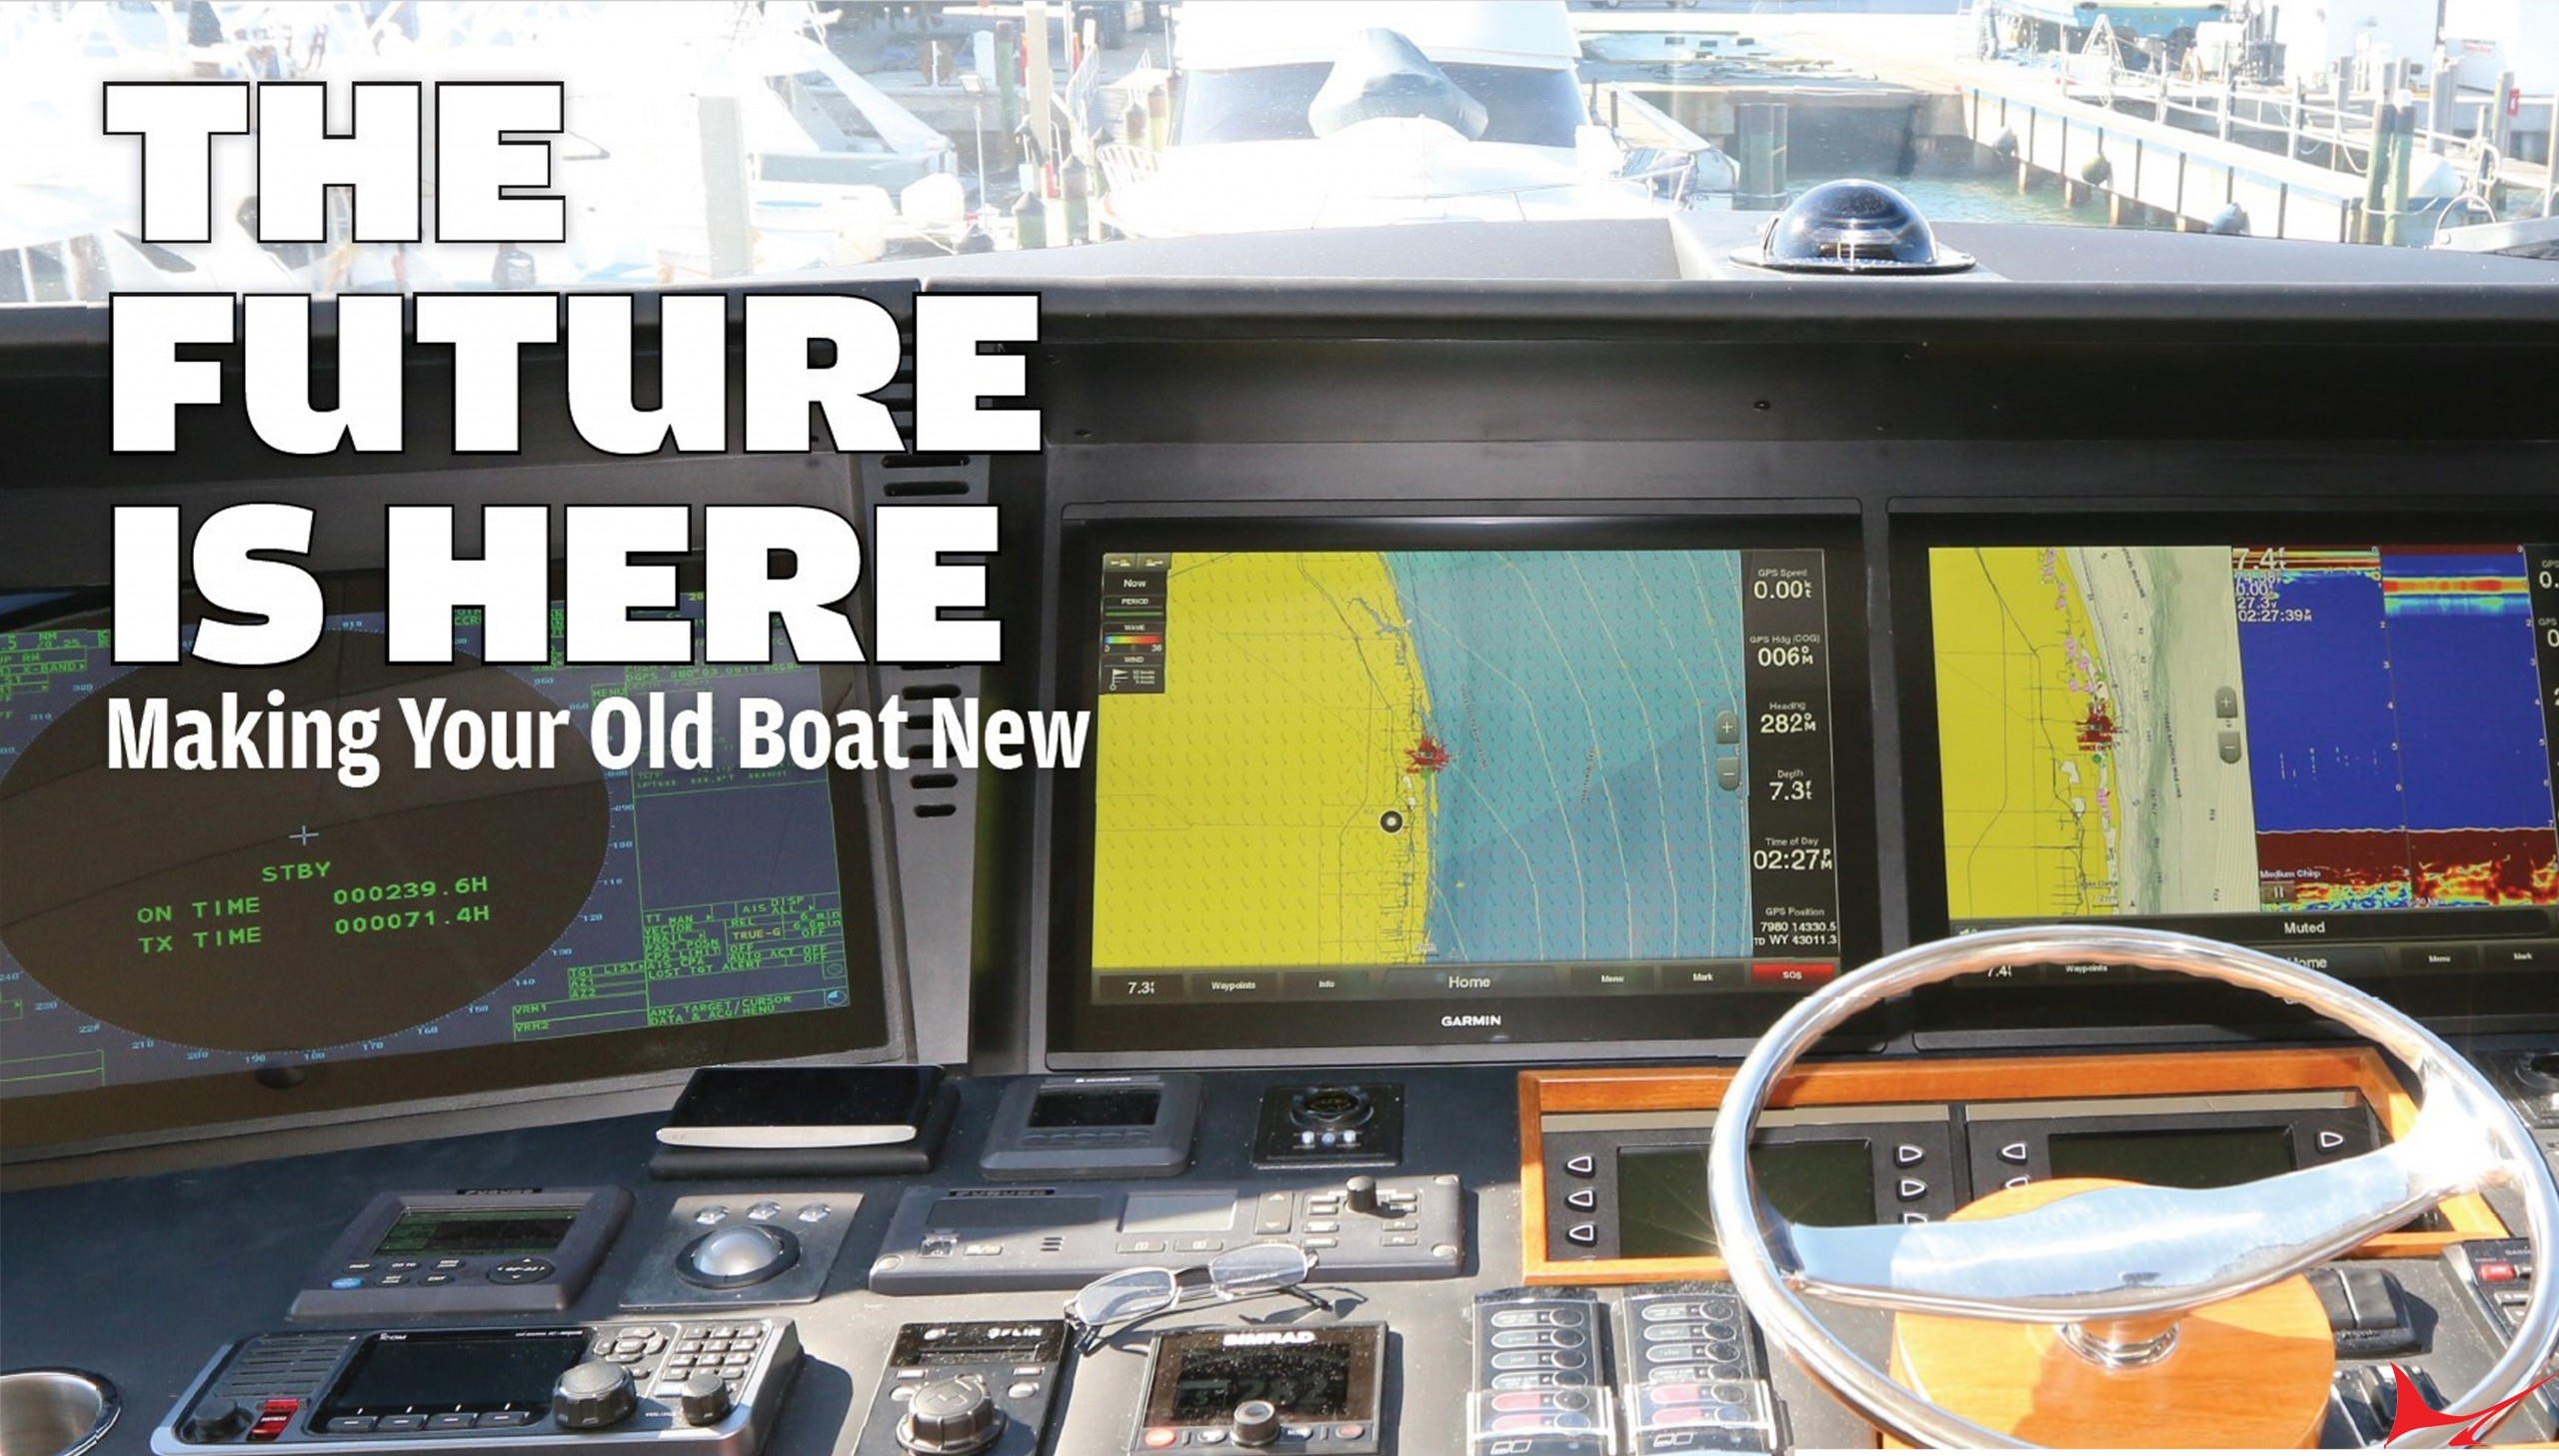 The Future is Here: Making Your Old Boat New